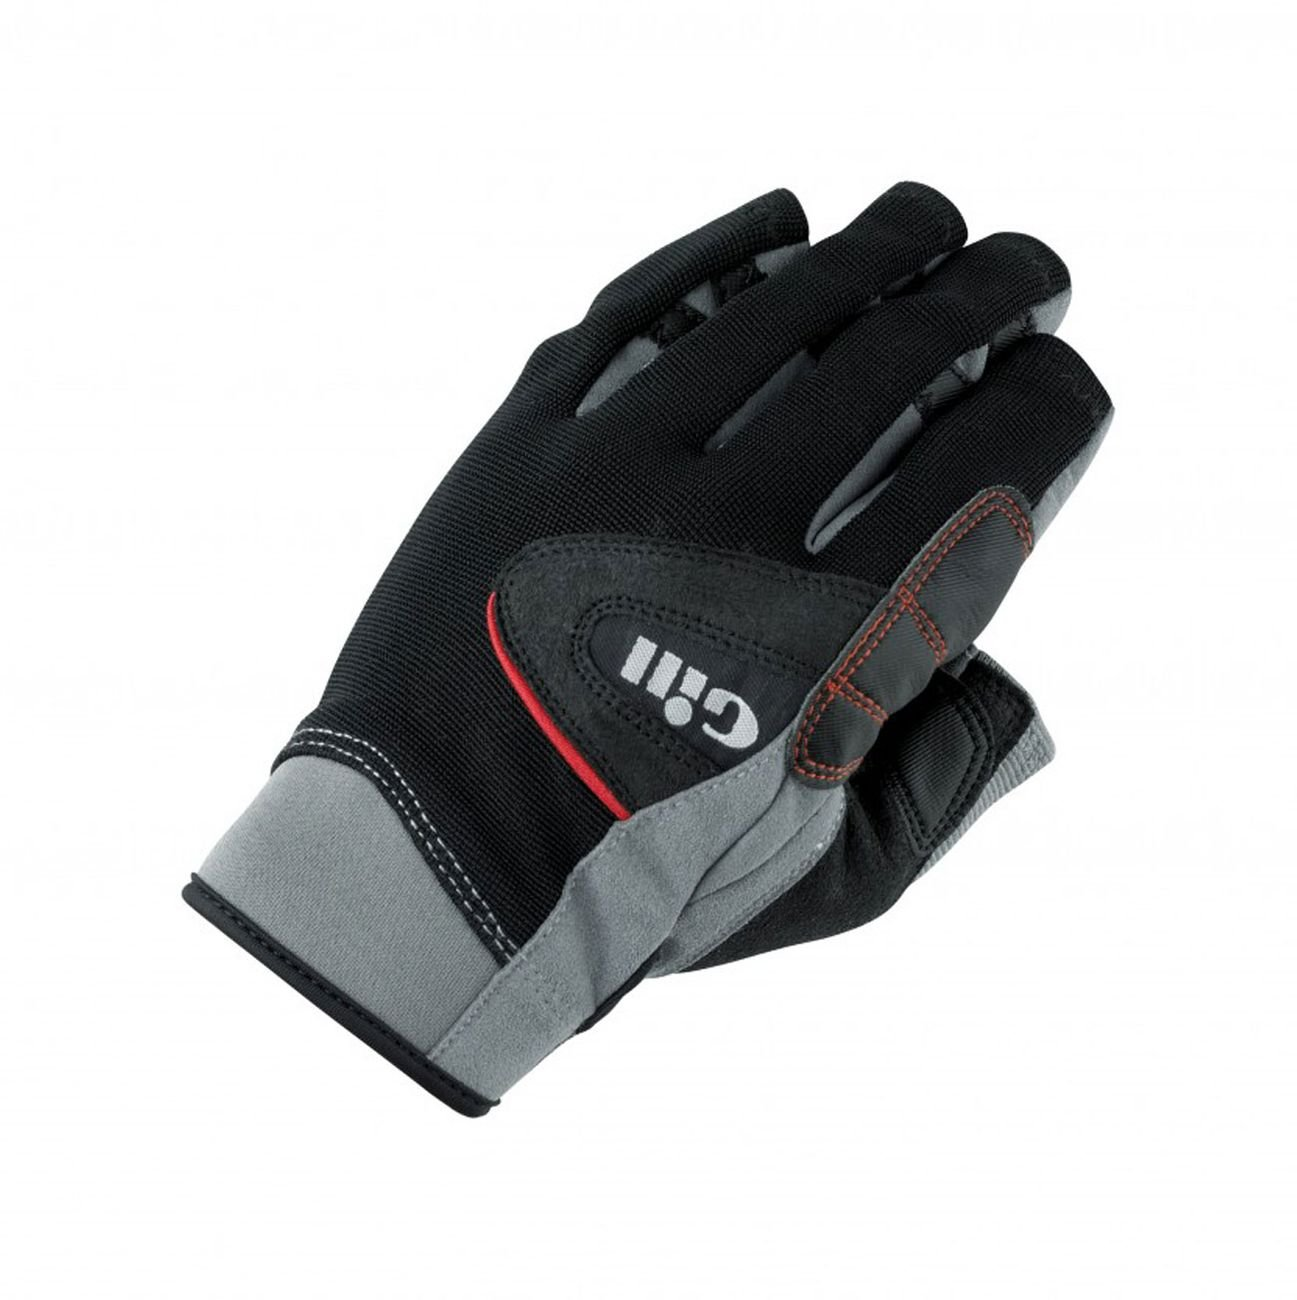 Gill Championship Short Finger Sailing Yachting and Dinghy Gloves Black - Easy Stretch UV Sun Protection and SPF Properties